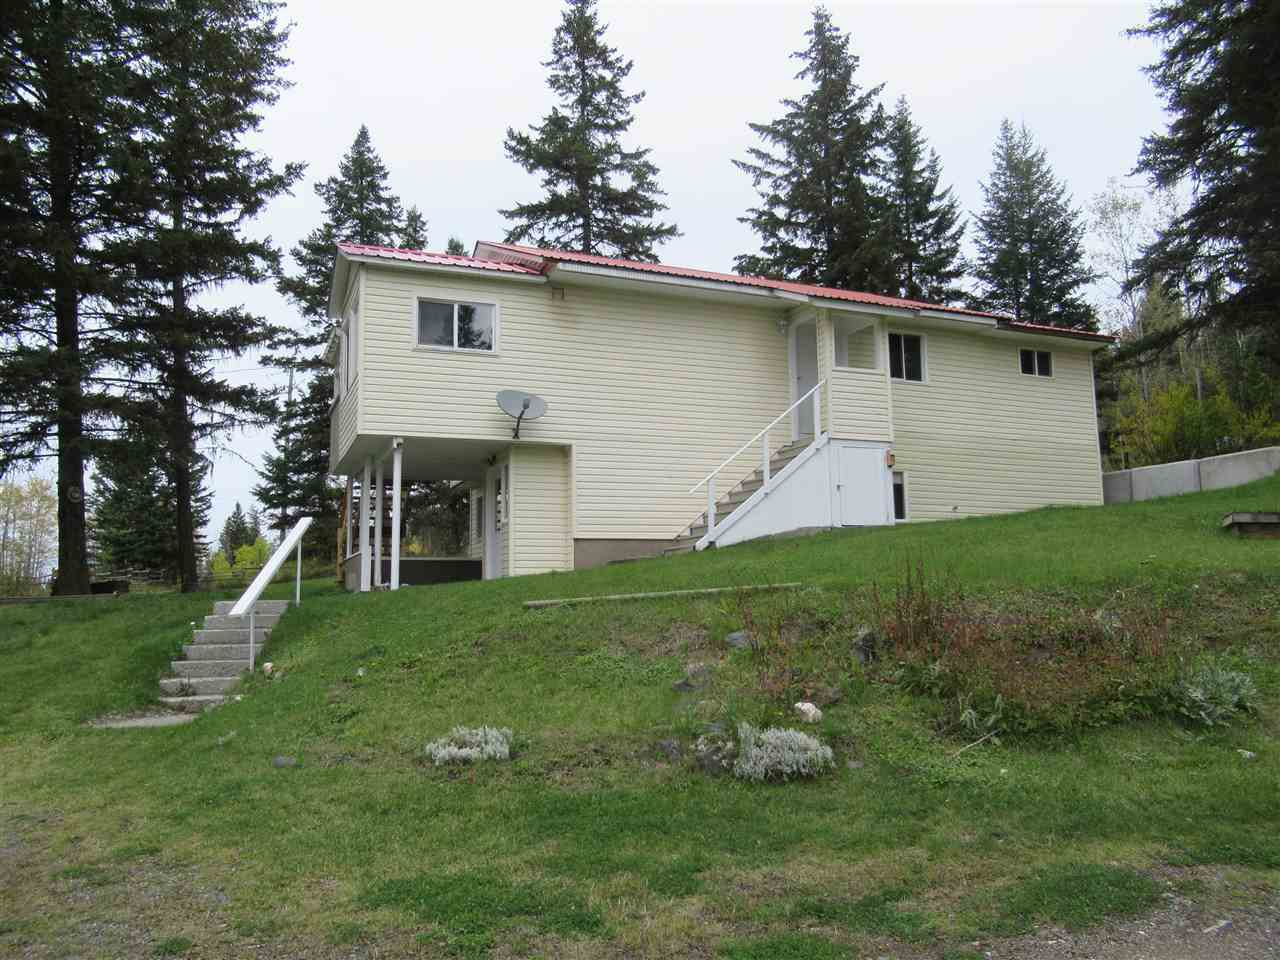 Photo 18: Photos: 3974 SCHARF Road in Williams Lake: Williams Lake - Rural North House for sale (Williams Lake (Zone 27))  : MLS®# R2409567